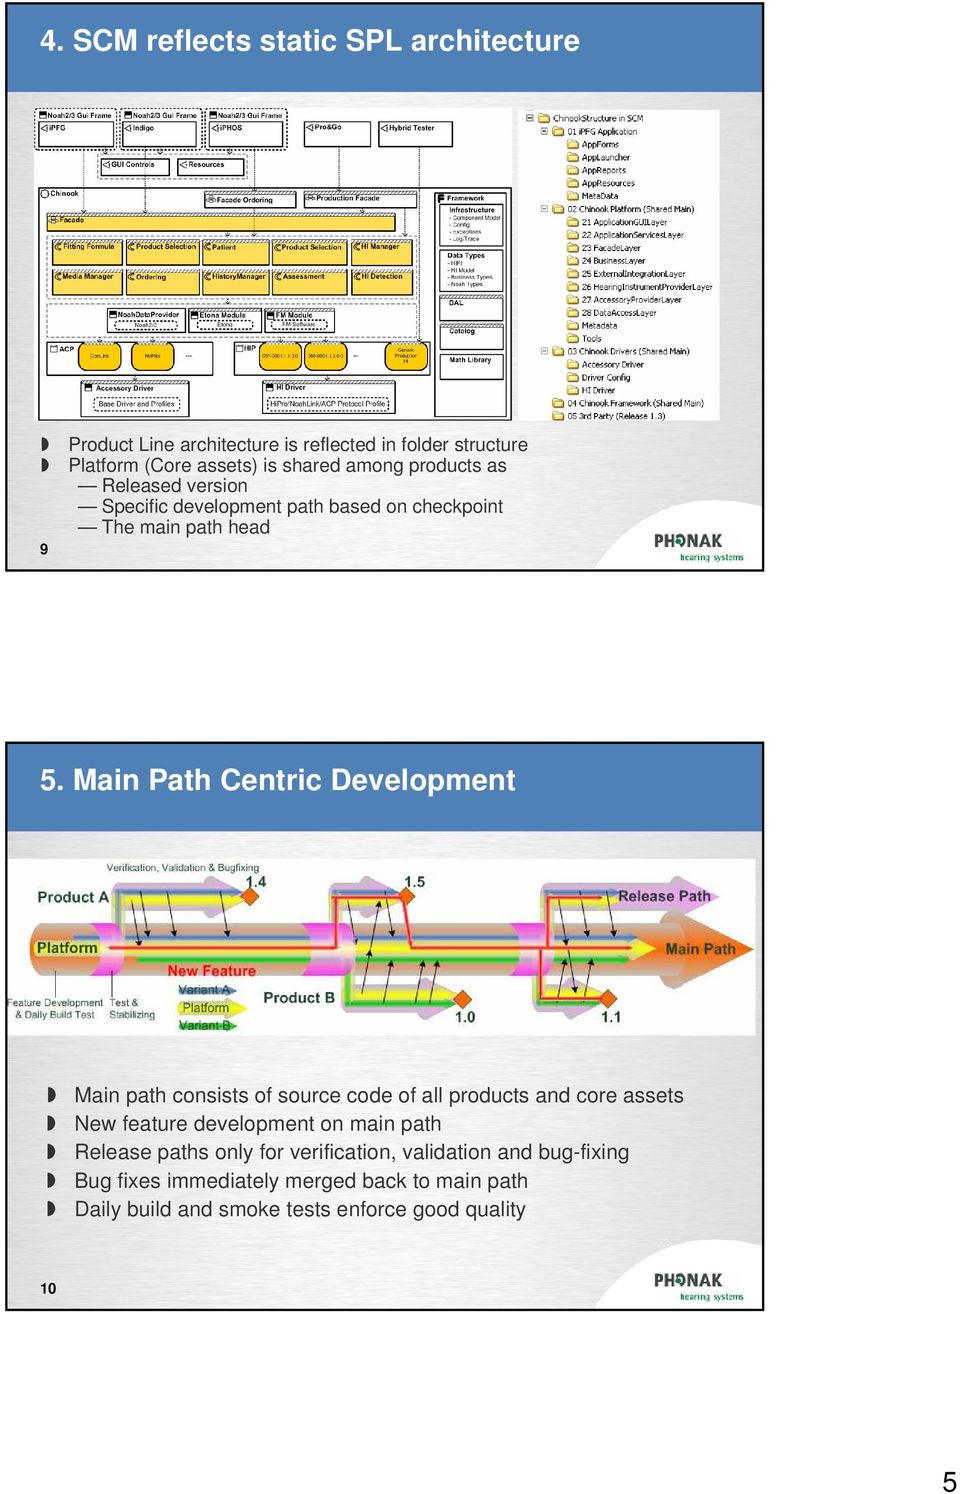 Main Path Centric Development Main path consists of source code of all products and core assets New feature development on main path